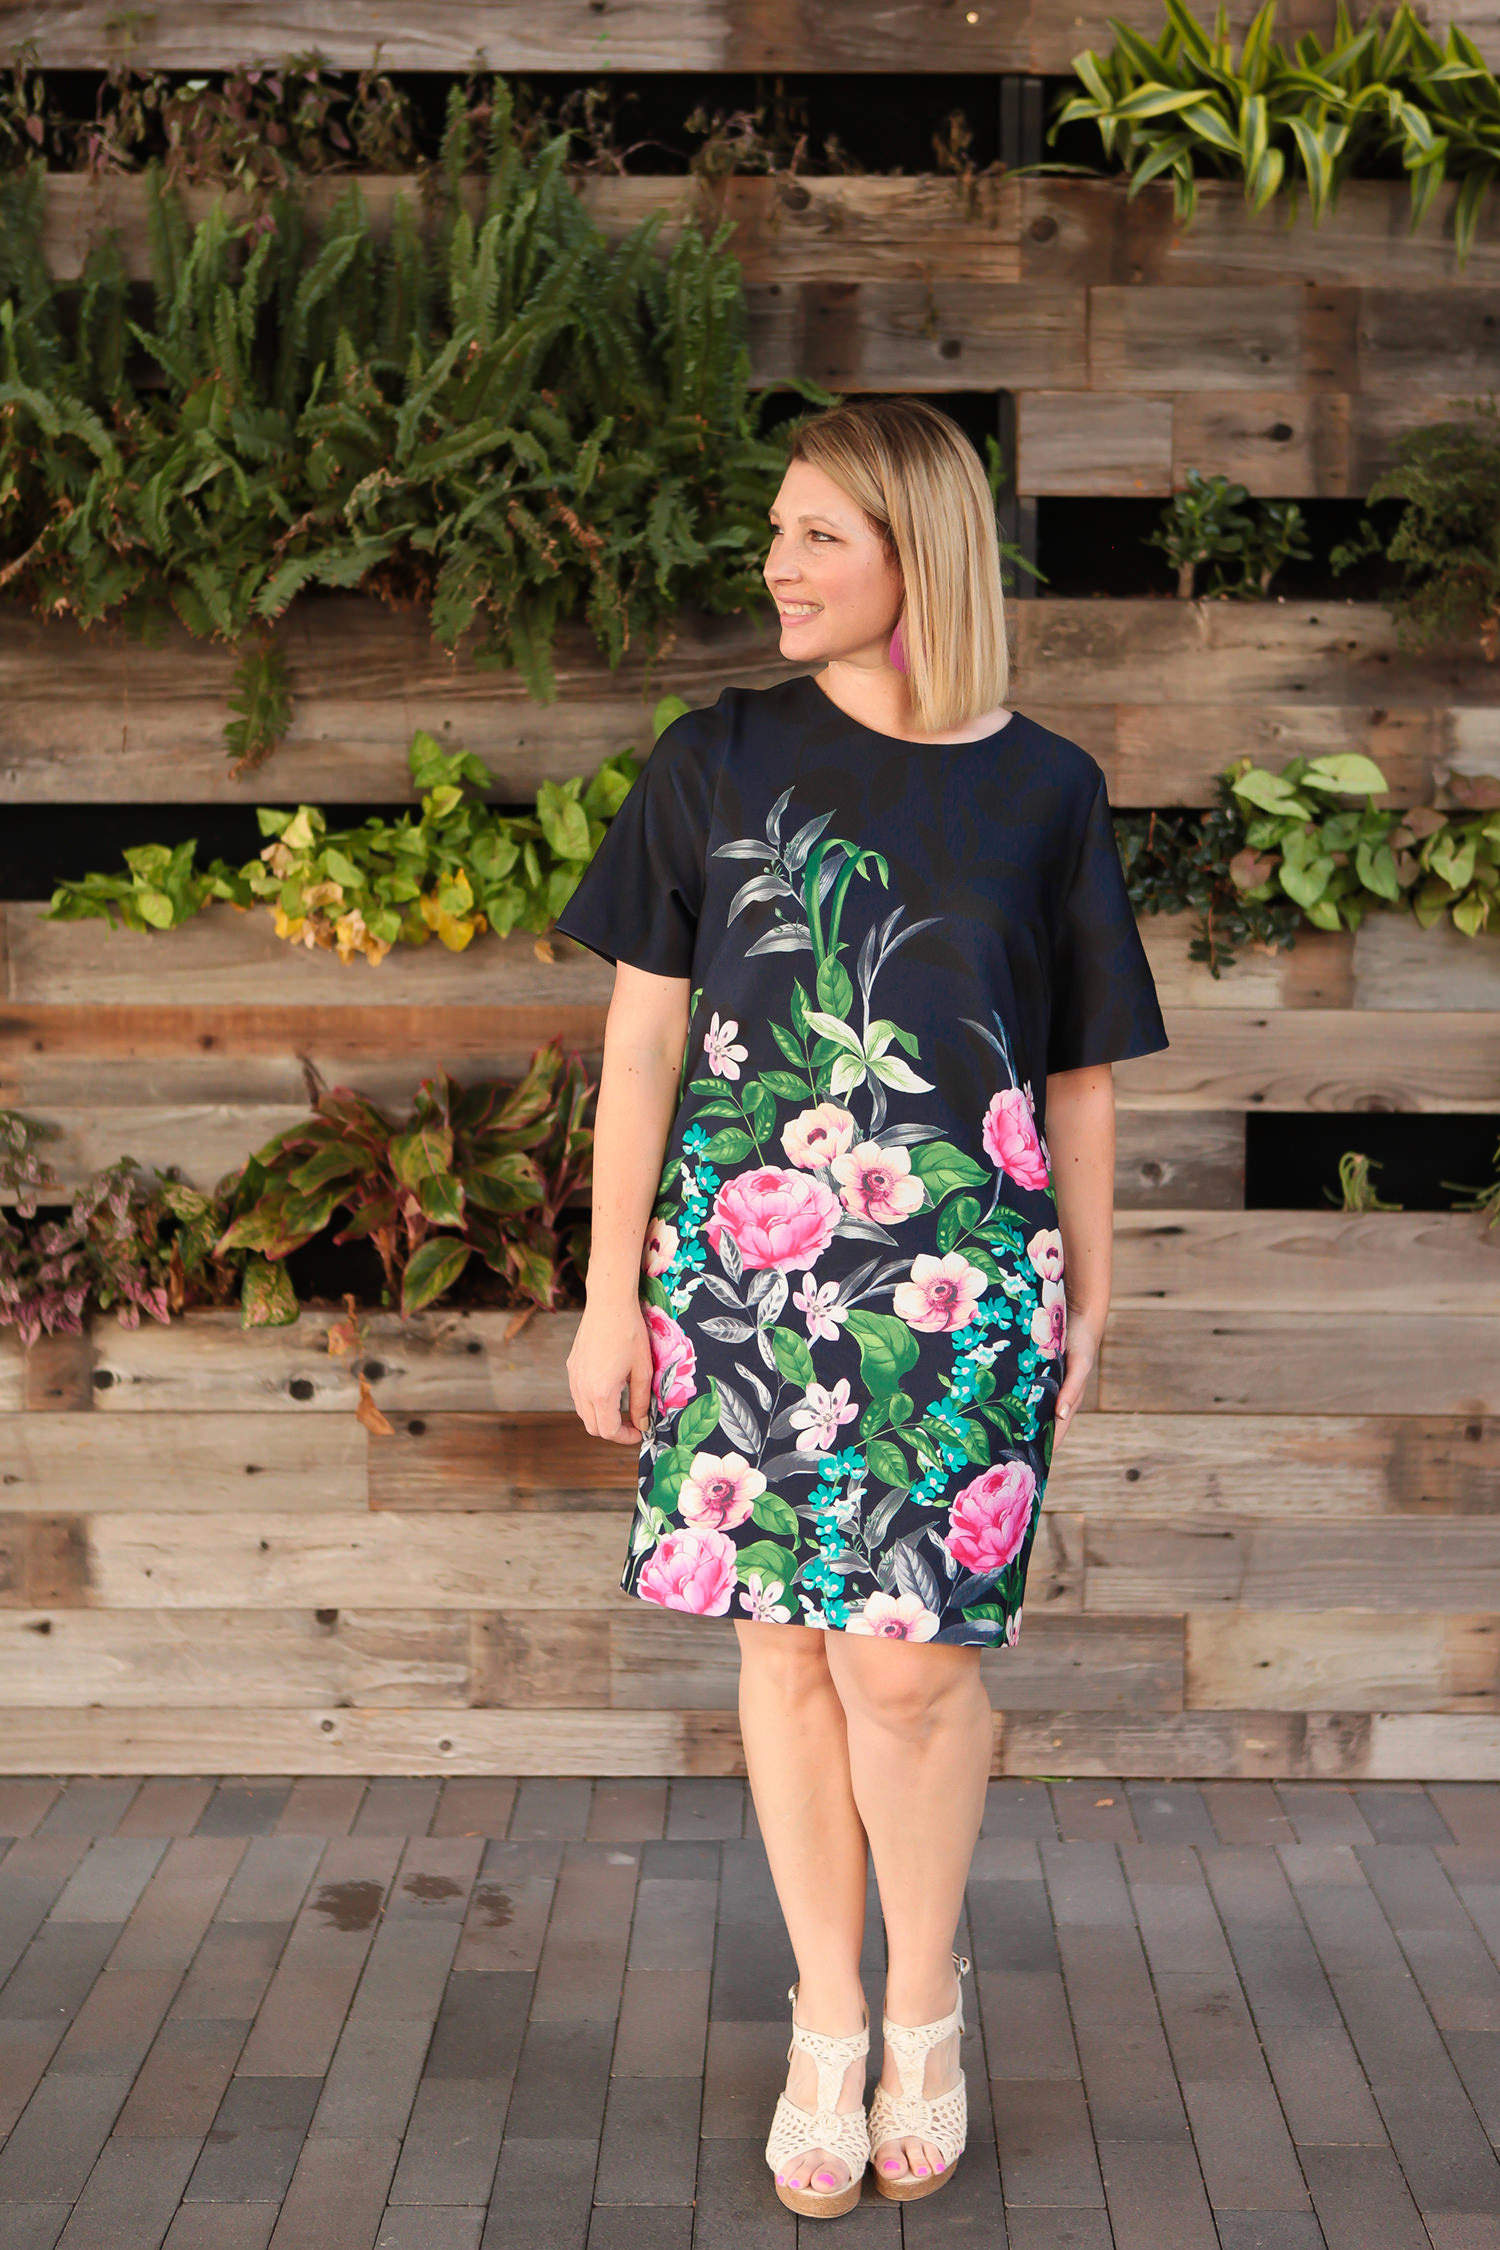 Why in the world would anyone RENT clothes? I'm sharing all the reasons I love Le Tote......and how it totally met some of my fashion needs this summer! This eliza j floral print scuba shift dress they sent is warm weather perfection!